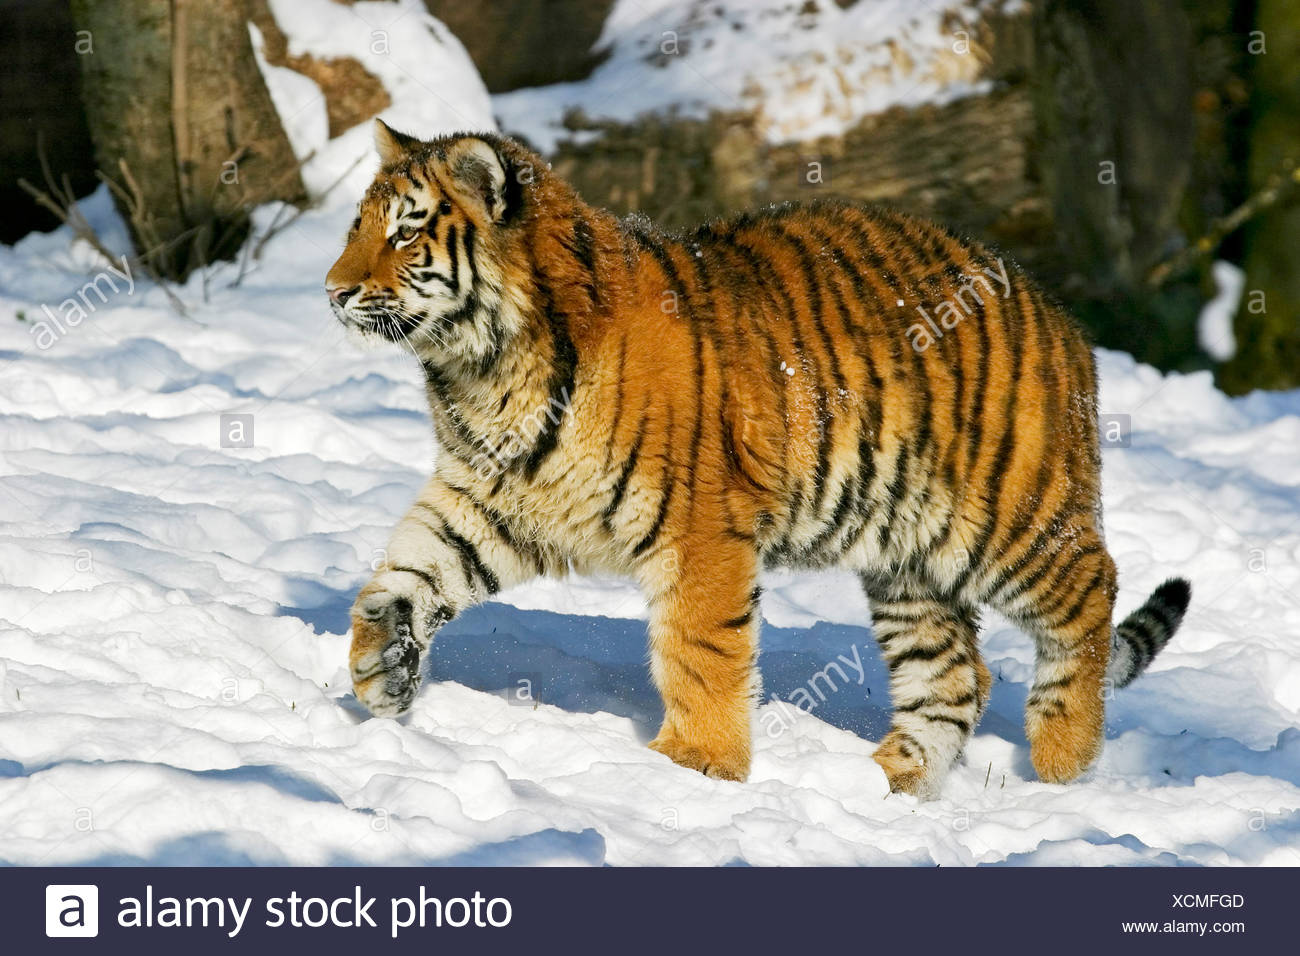 Young Sibirian Tiger (Panthera tigris altaica) in snow - Stock Image